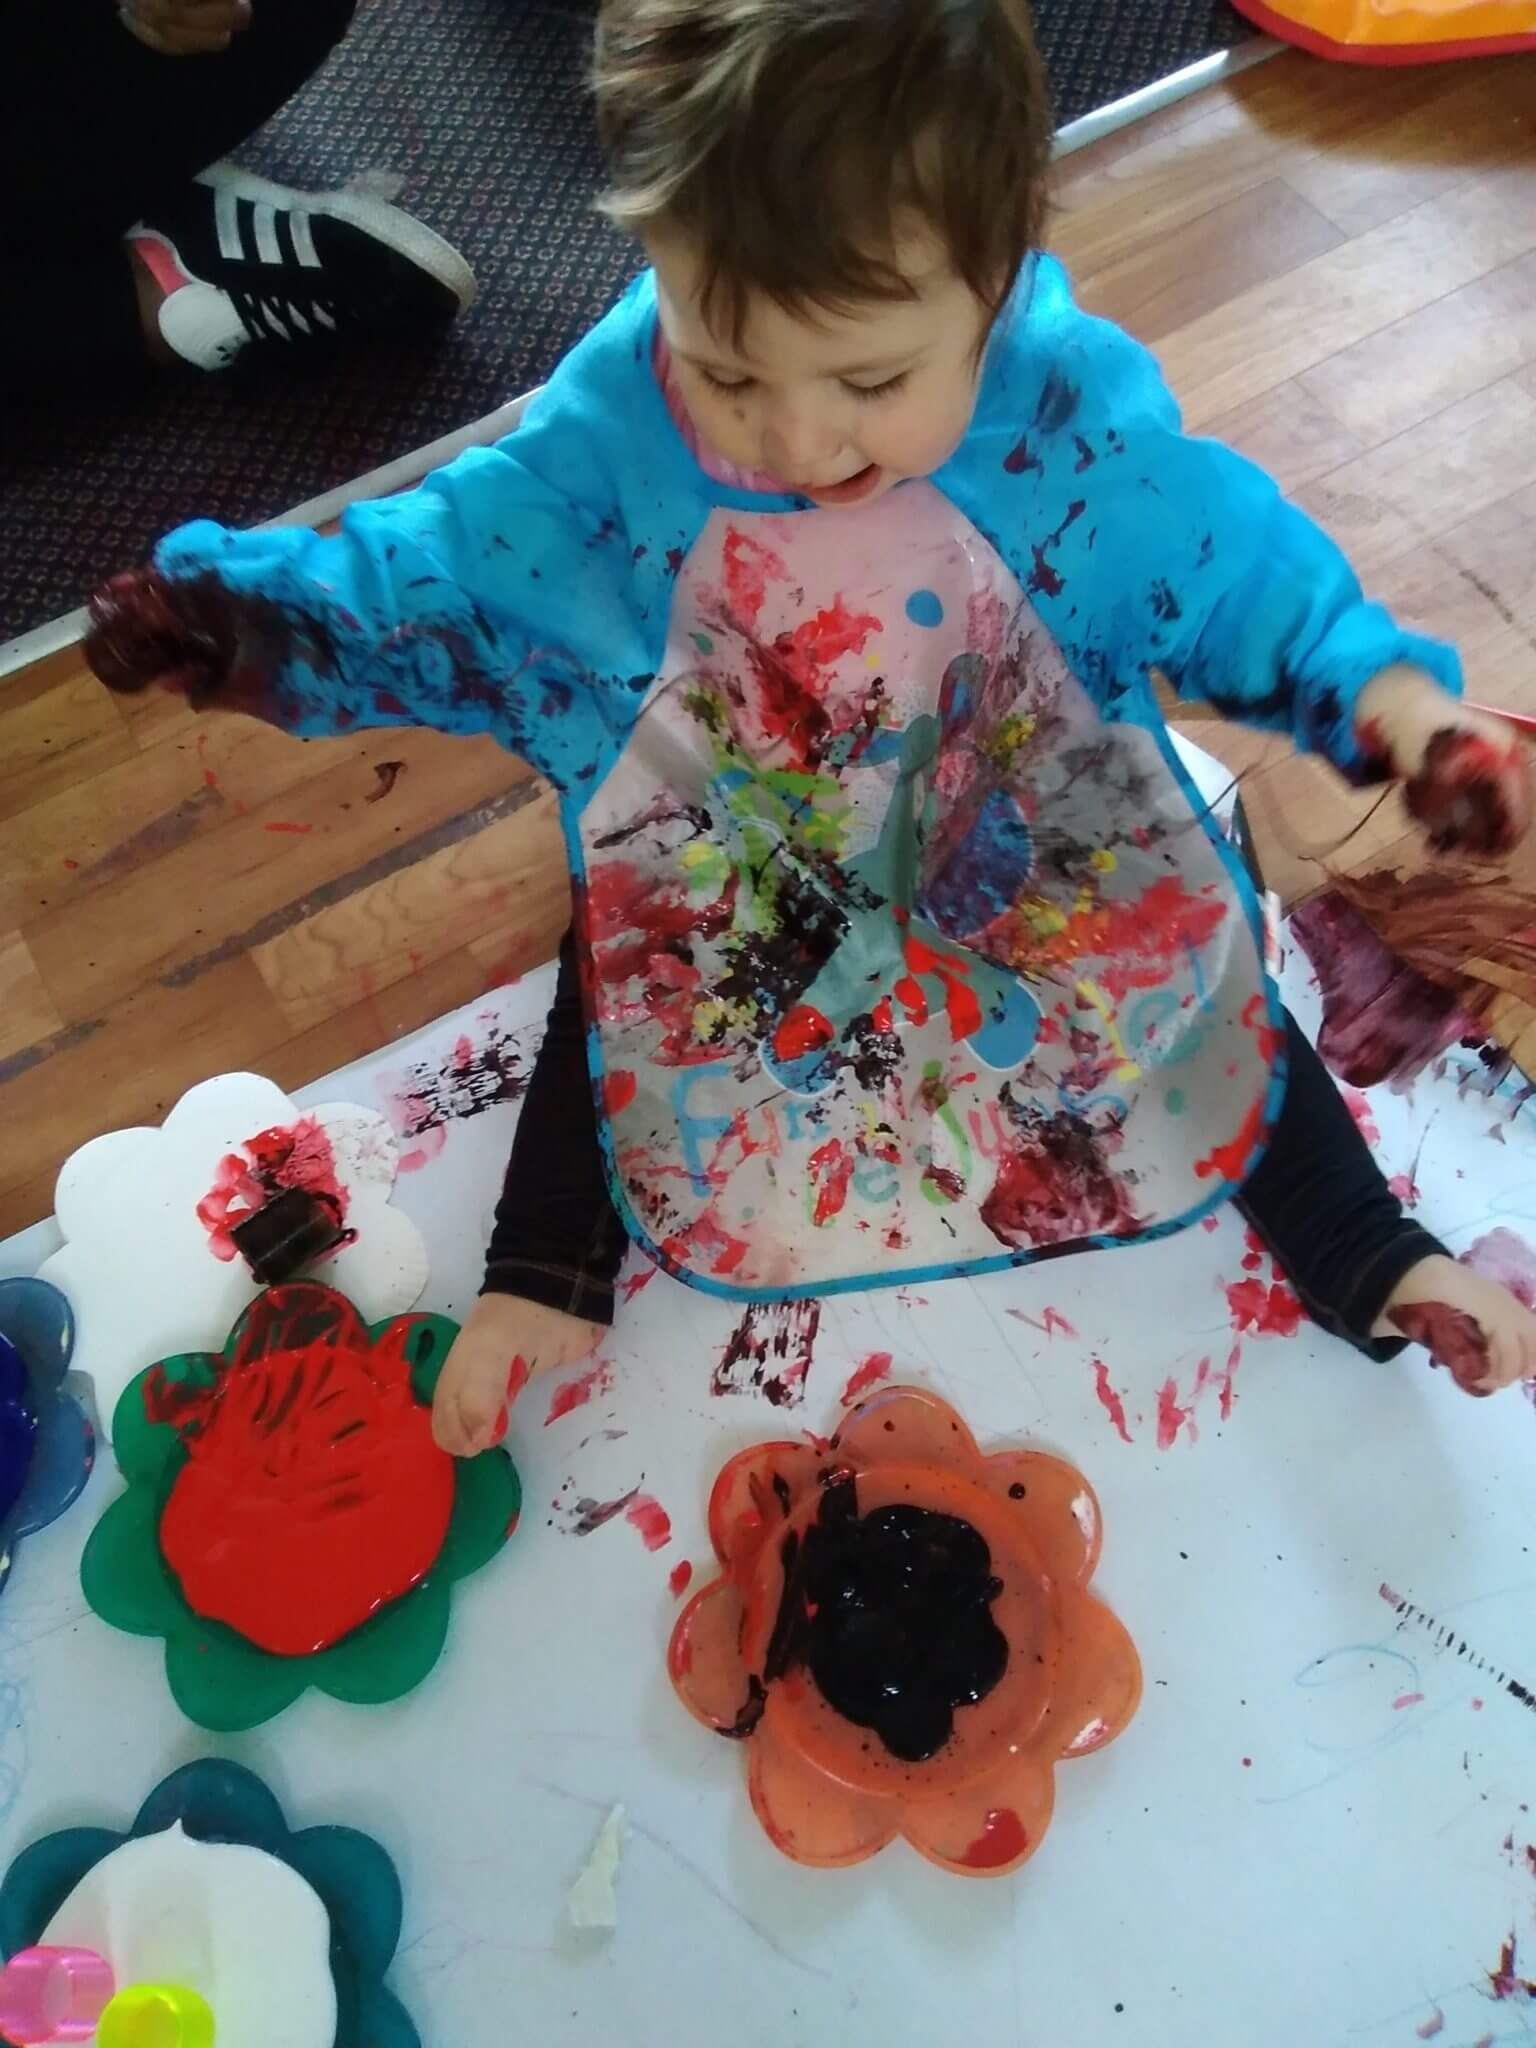 paint, babies, sensory, messy play, fun, active learning, stimulkating, exciting, fun, creativity,